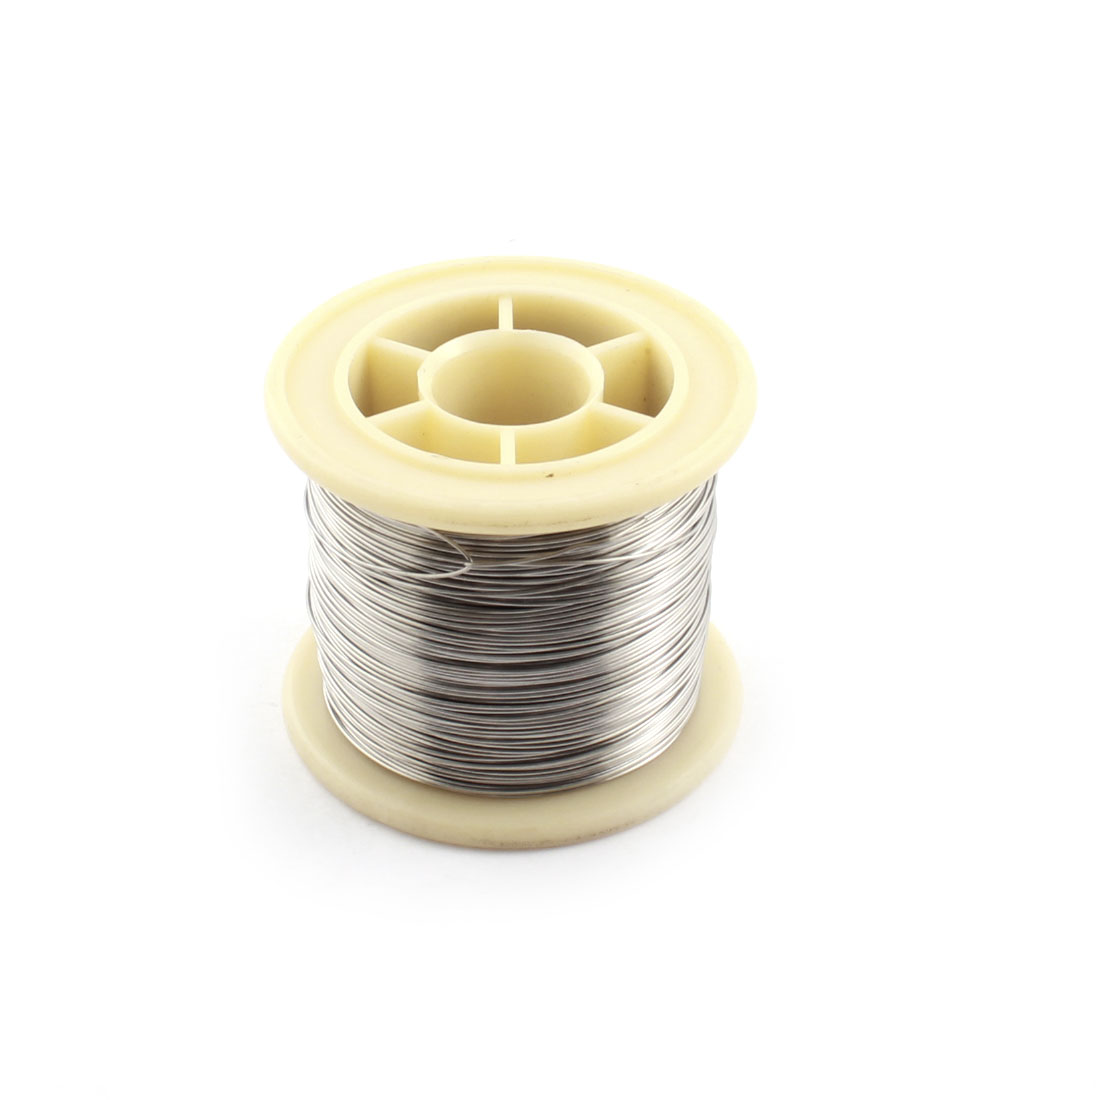 50Meter 0.5mm Diameter AWG24 Nichrome Resistance Heating Coils Resistor Wire for Frigidaire Heater